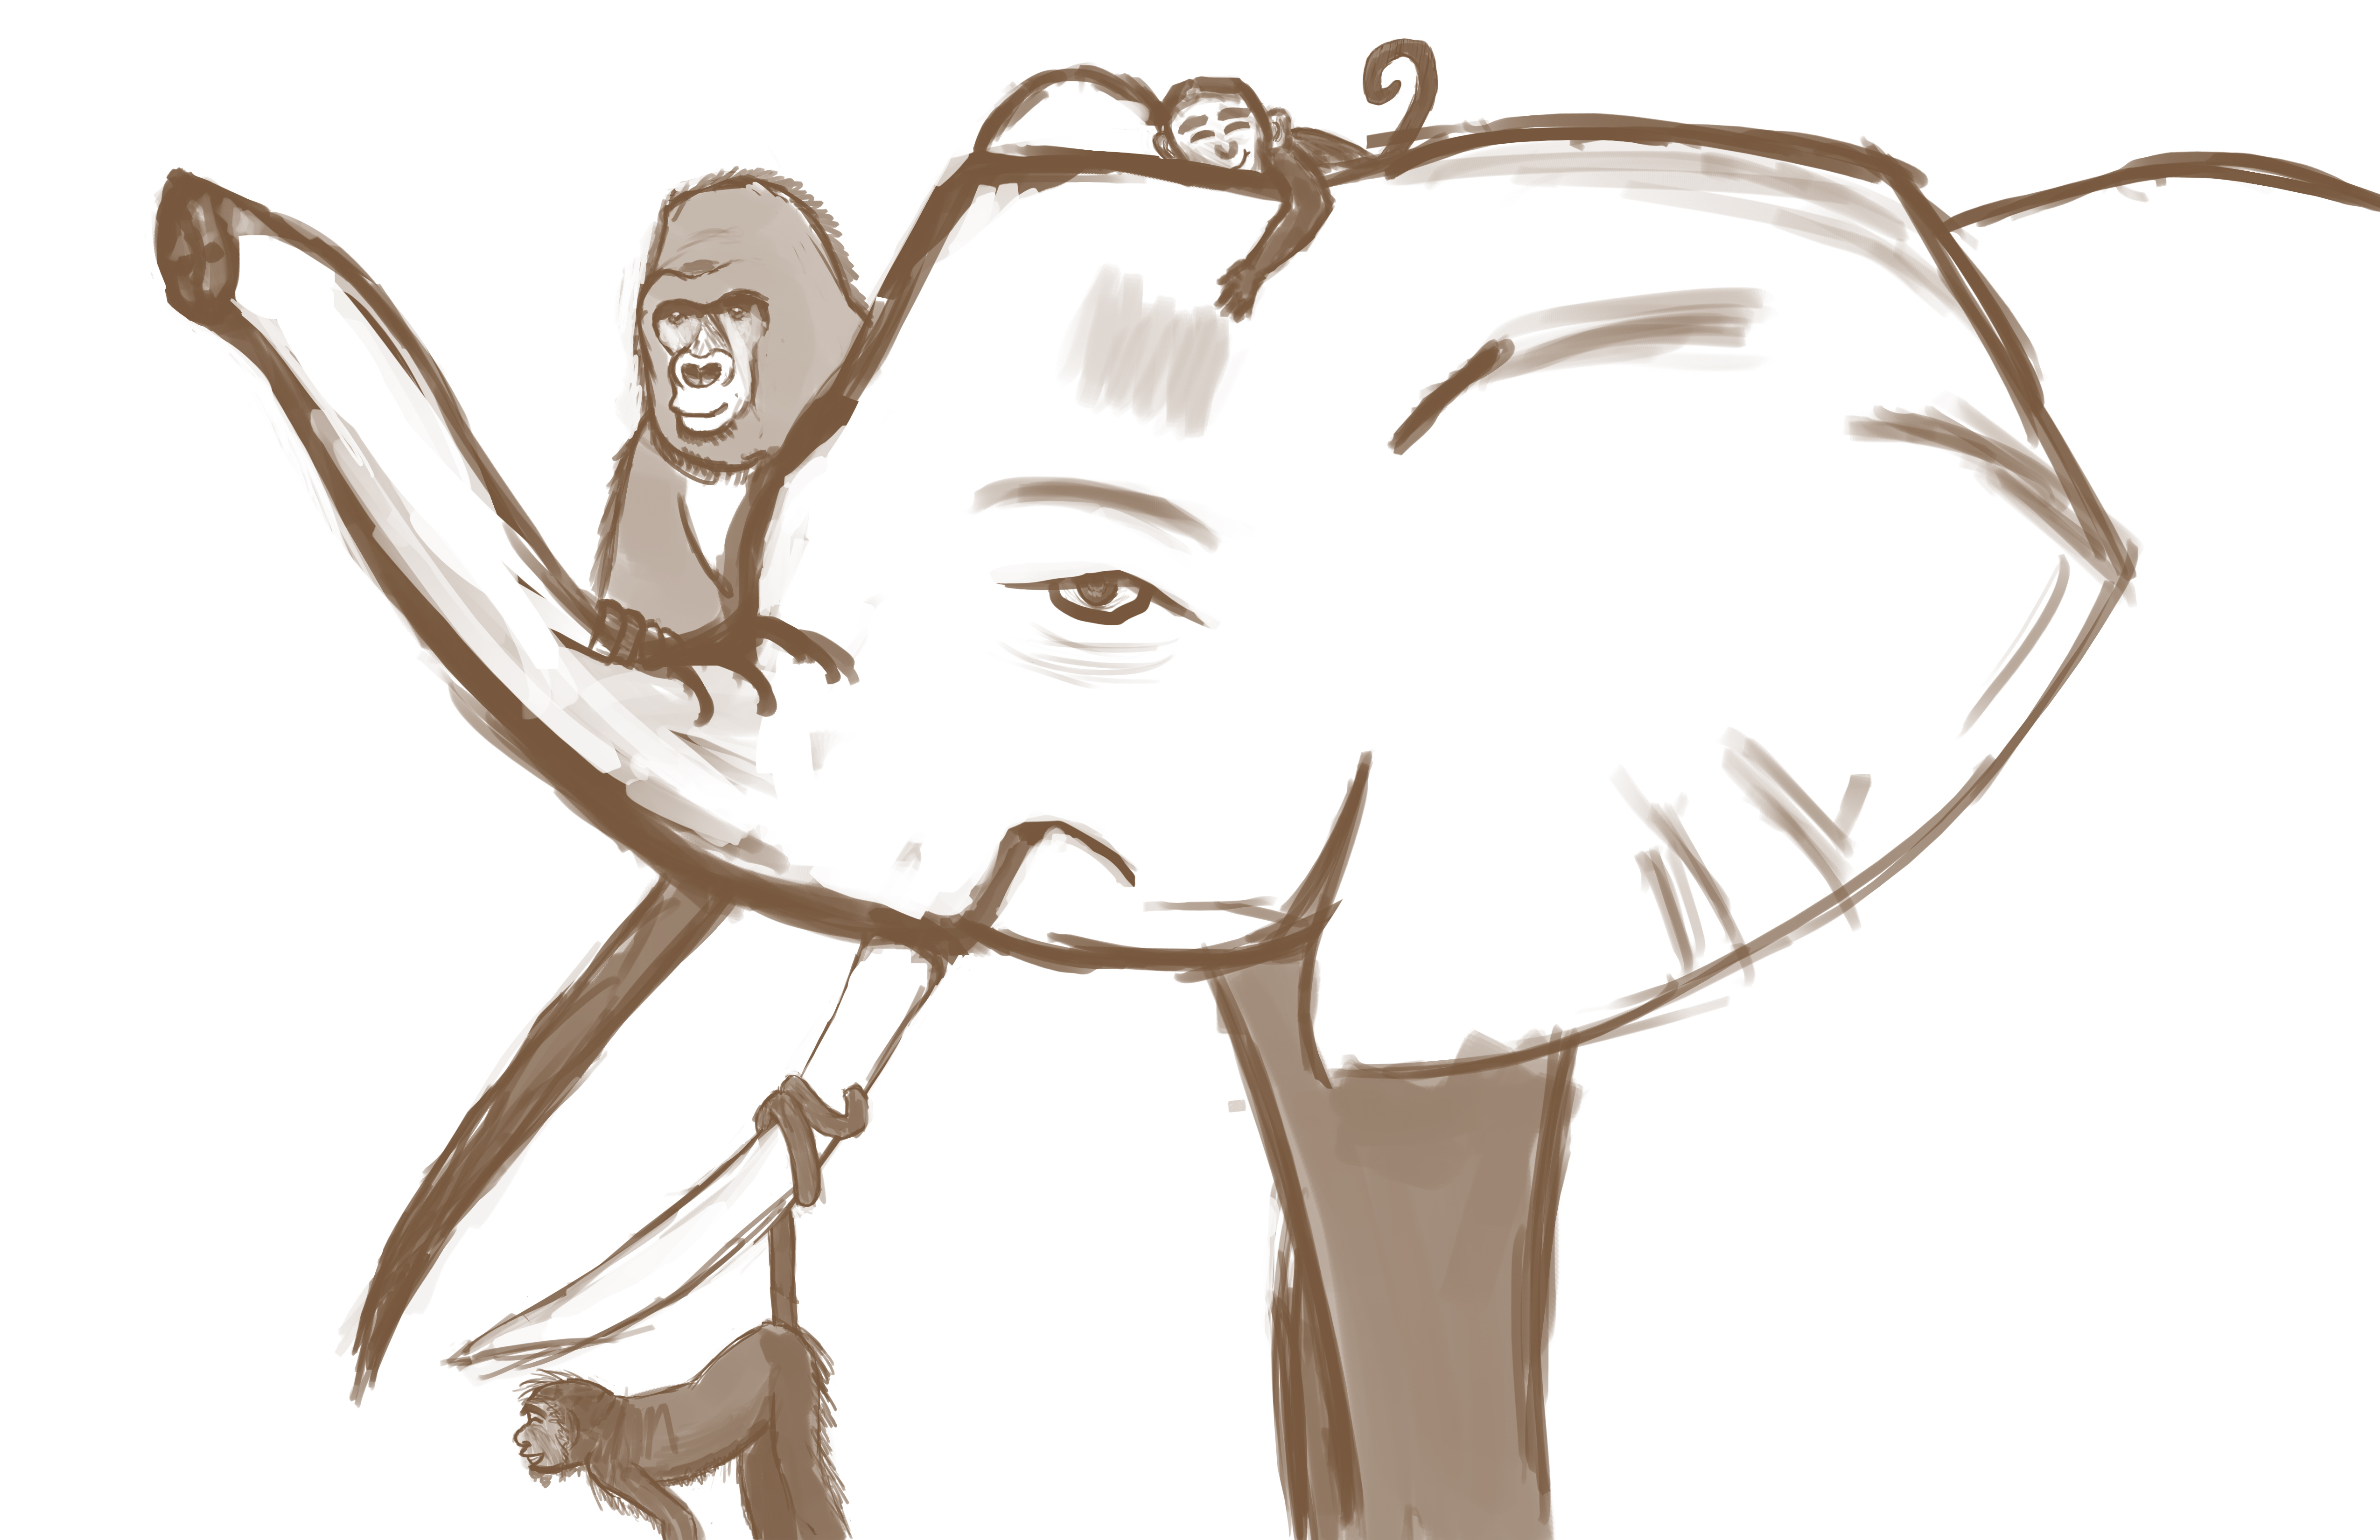 Perturbed Pachyderm